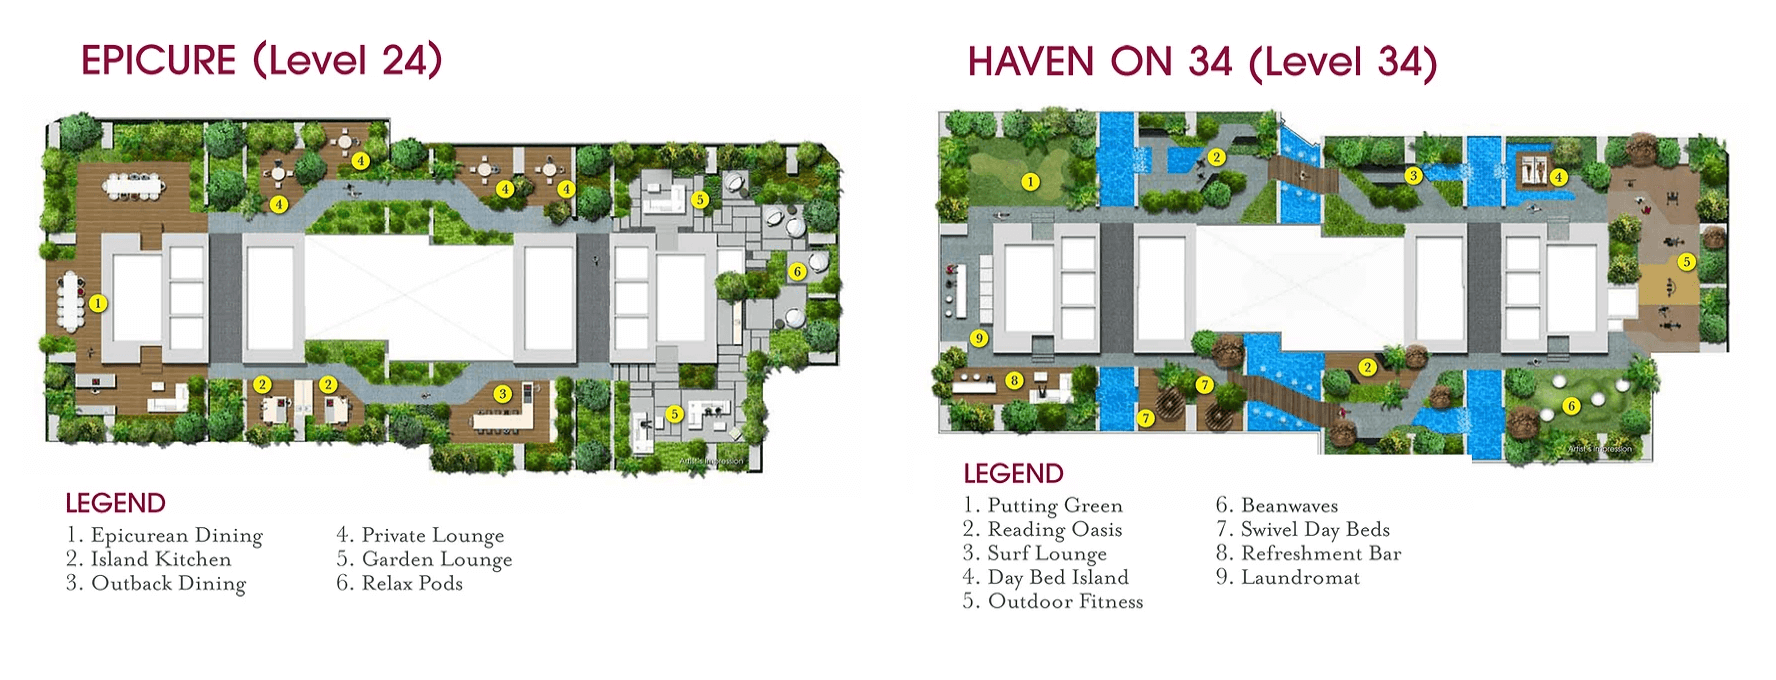 V On Shenton New Launch Condo Site Plan Level 24 and 34